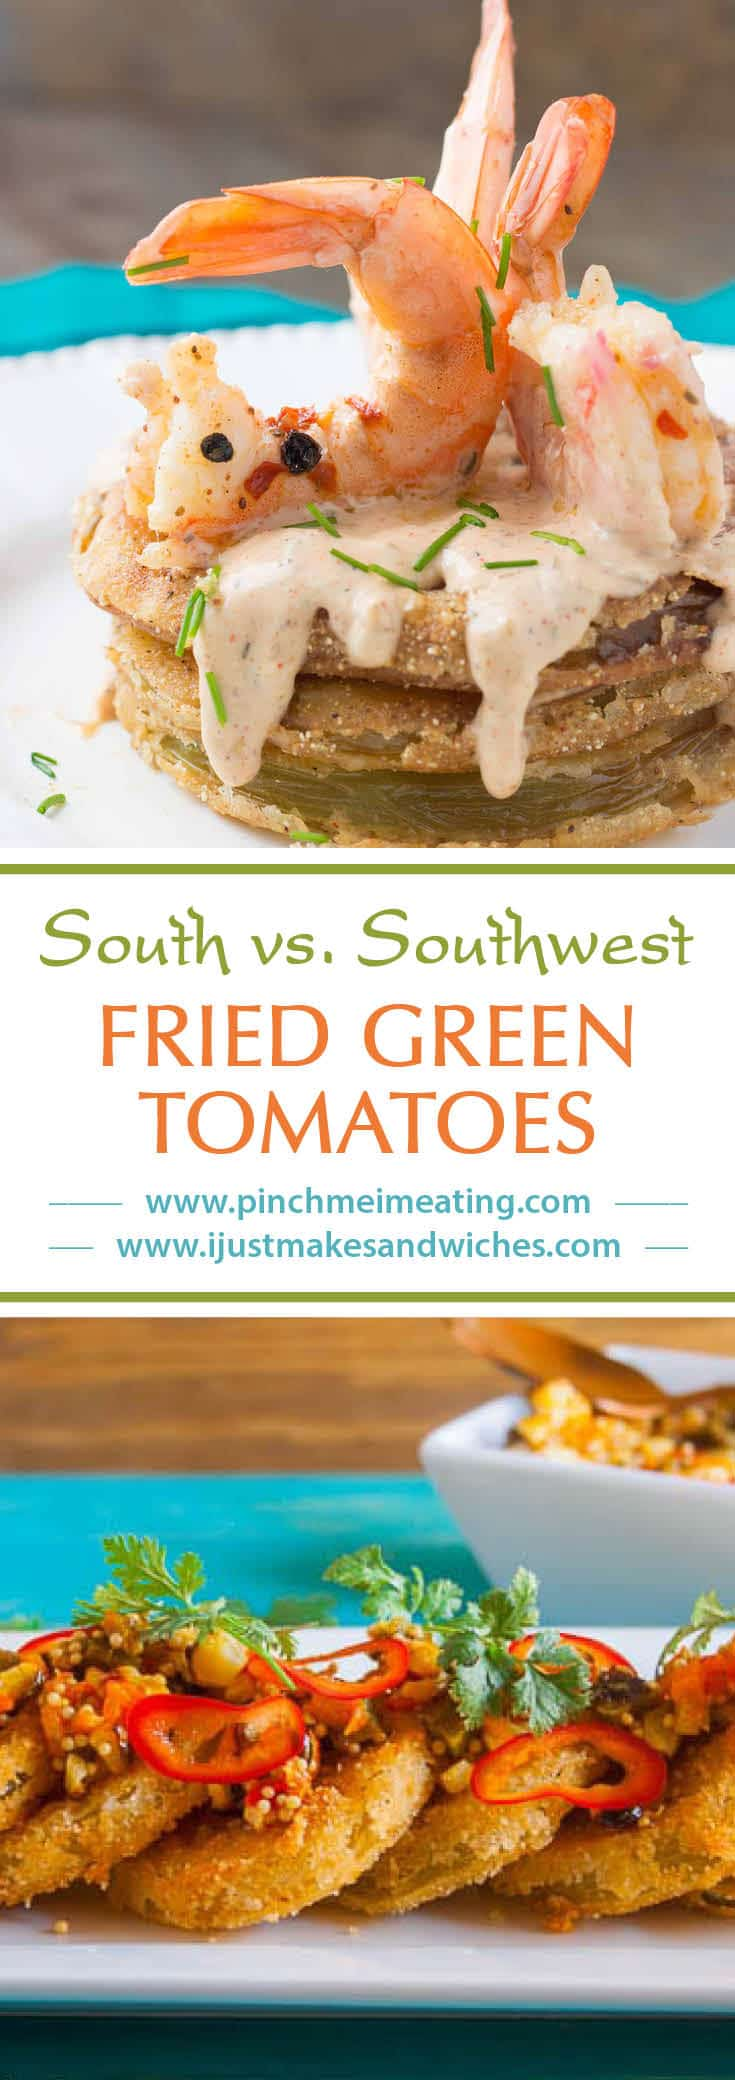 South vs. Southwest Fried Green Tomatoes - Southern fried green tomatoes with Cajun remoulade and pickled shrimp and Southwestern fried green tomatoes with roasted corn and nopales relish - two very different takes on the Southern classic!